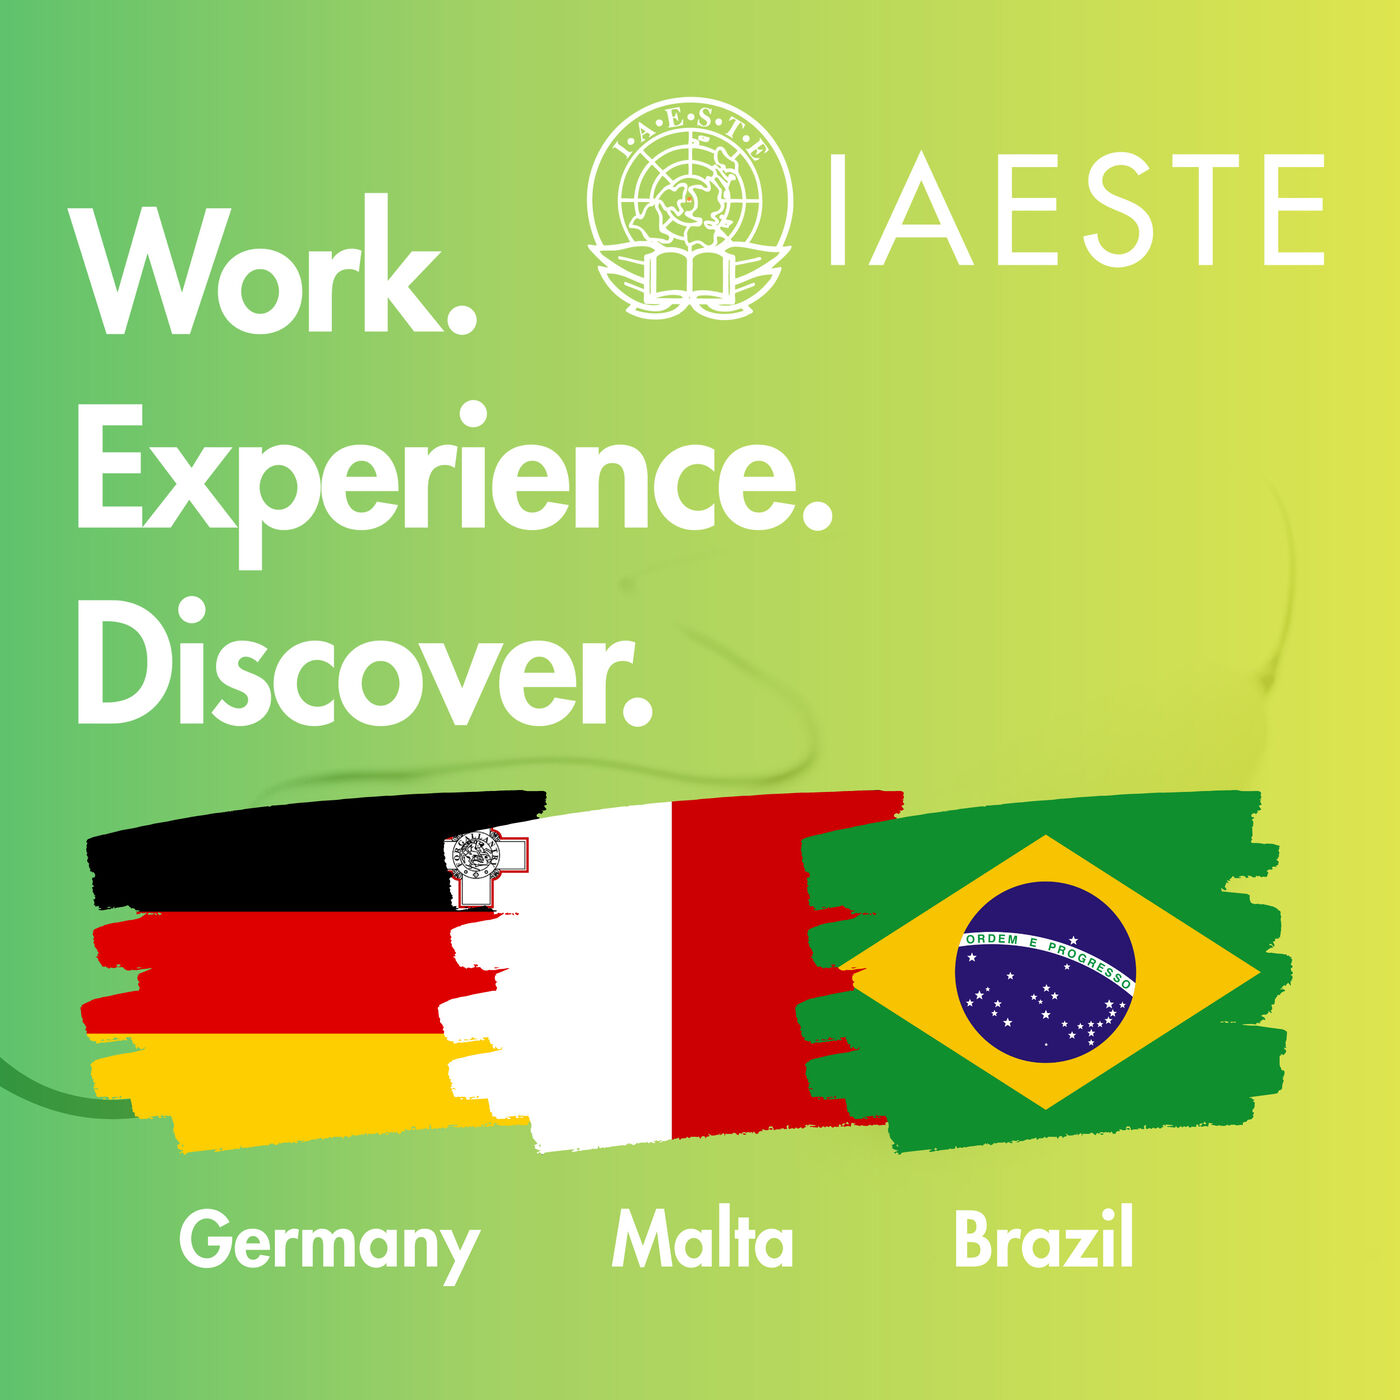 008 - From Germany to Malta and Brazil - Two Electrical Engineering internships